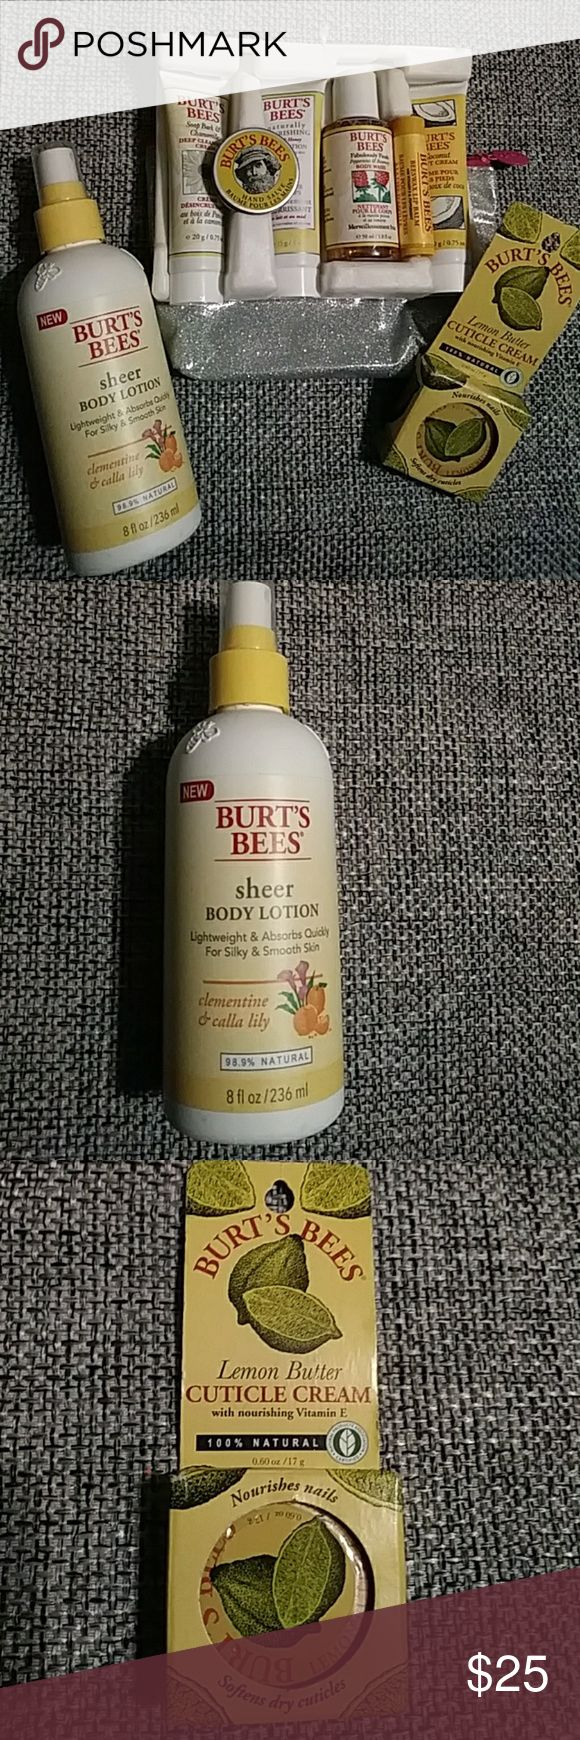 Burt's Bees Bundle 🐝Head to Toe Burt's Bees set. Bonus sheer body lotion, spray lotion clementine & calla lily. Lemon butter cuticle cream. All unopened and unused. Sparkle bag is included for a carrying bag. Burt's Bees Makeup